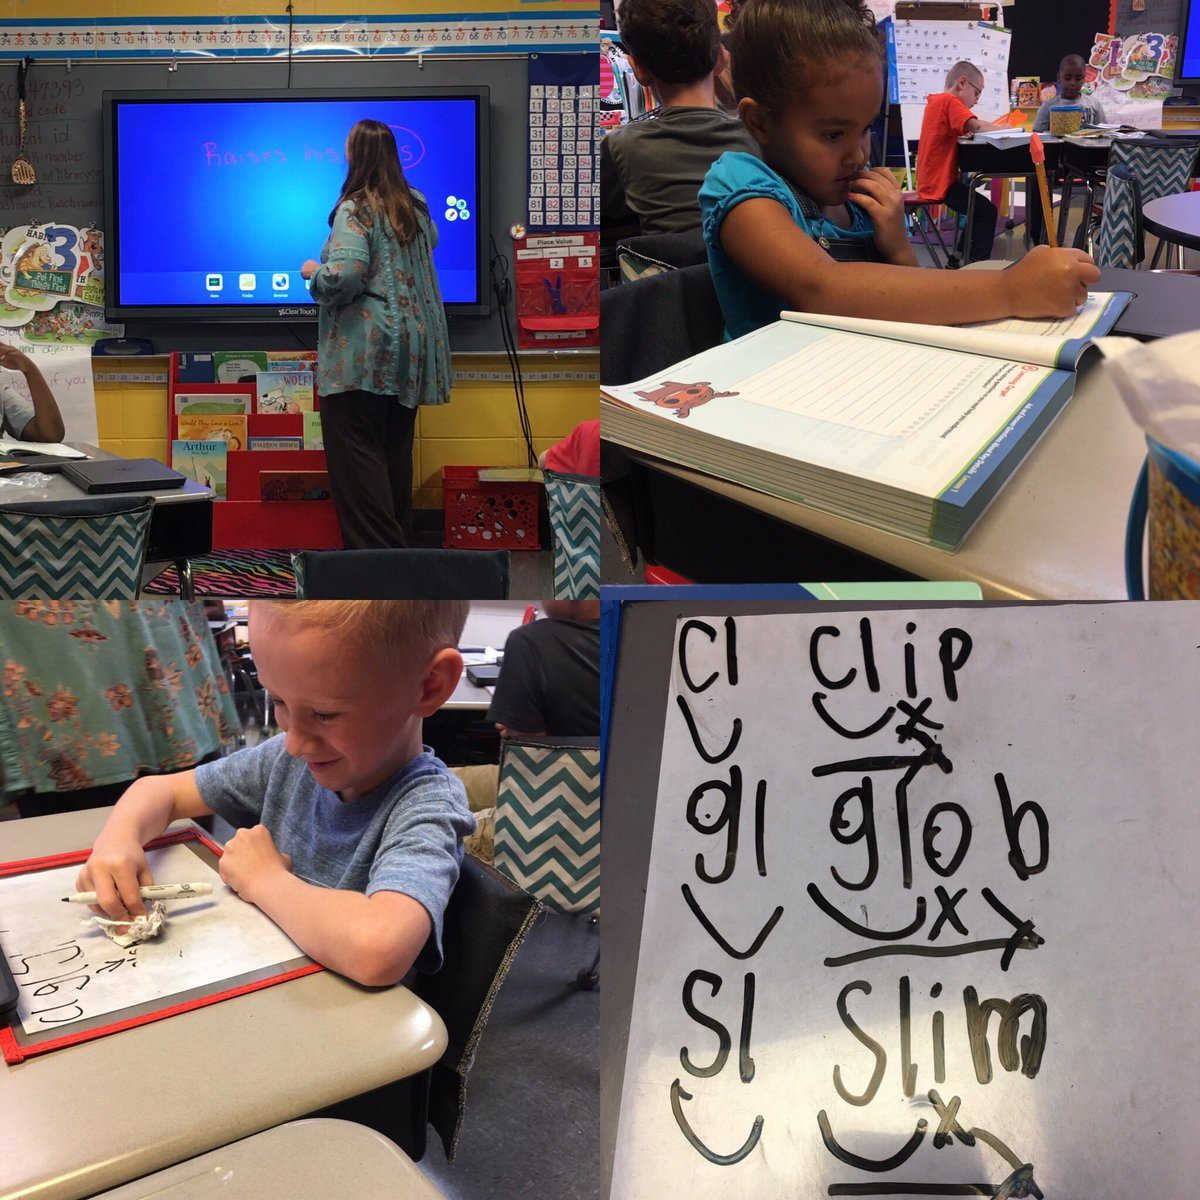 2nd gr Ss play the phonics eraser game, review prickly adventure text, &amp; identify key details @TCBOE_LES #LeadingTheWay <br>http://pic.twitter.com/mtCxbabCbE